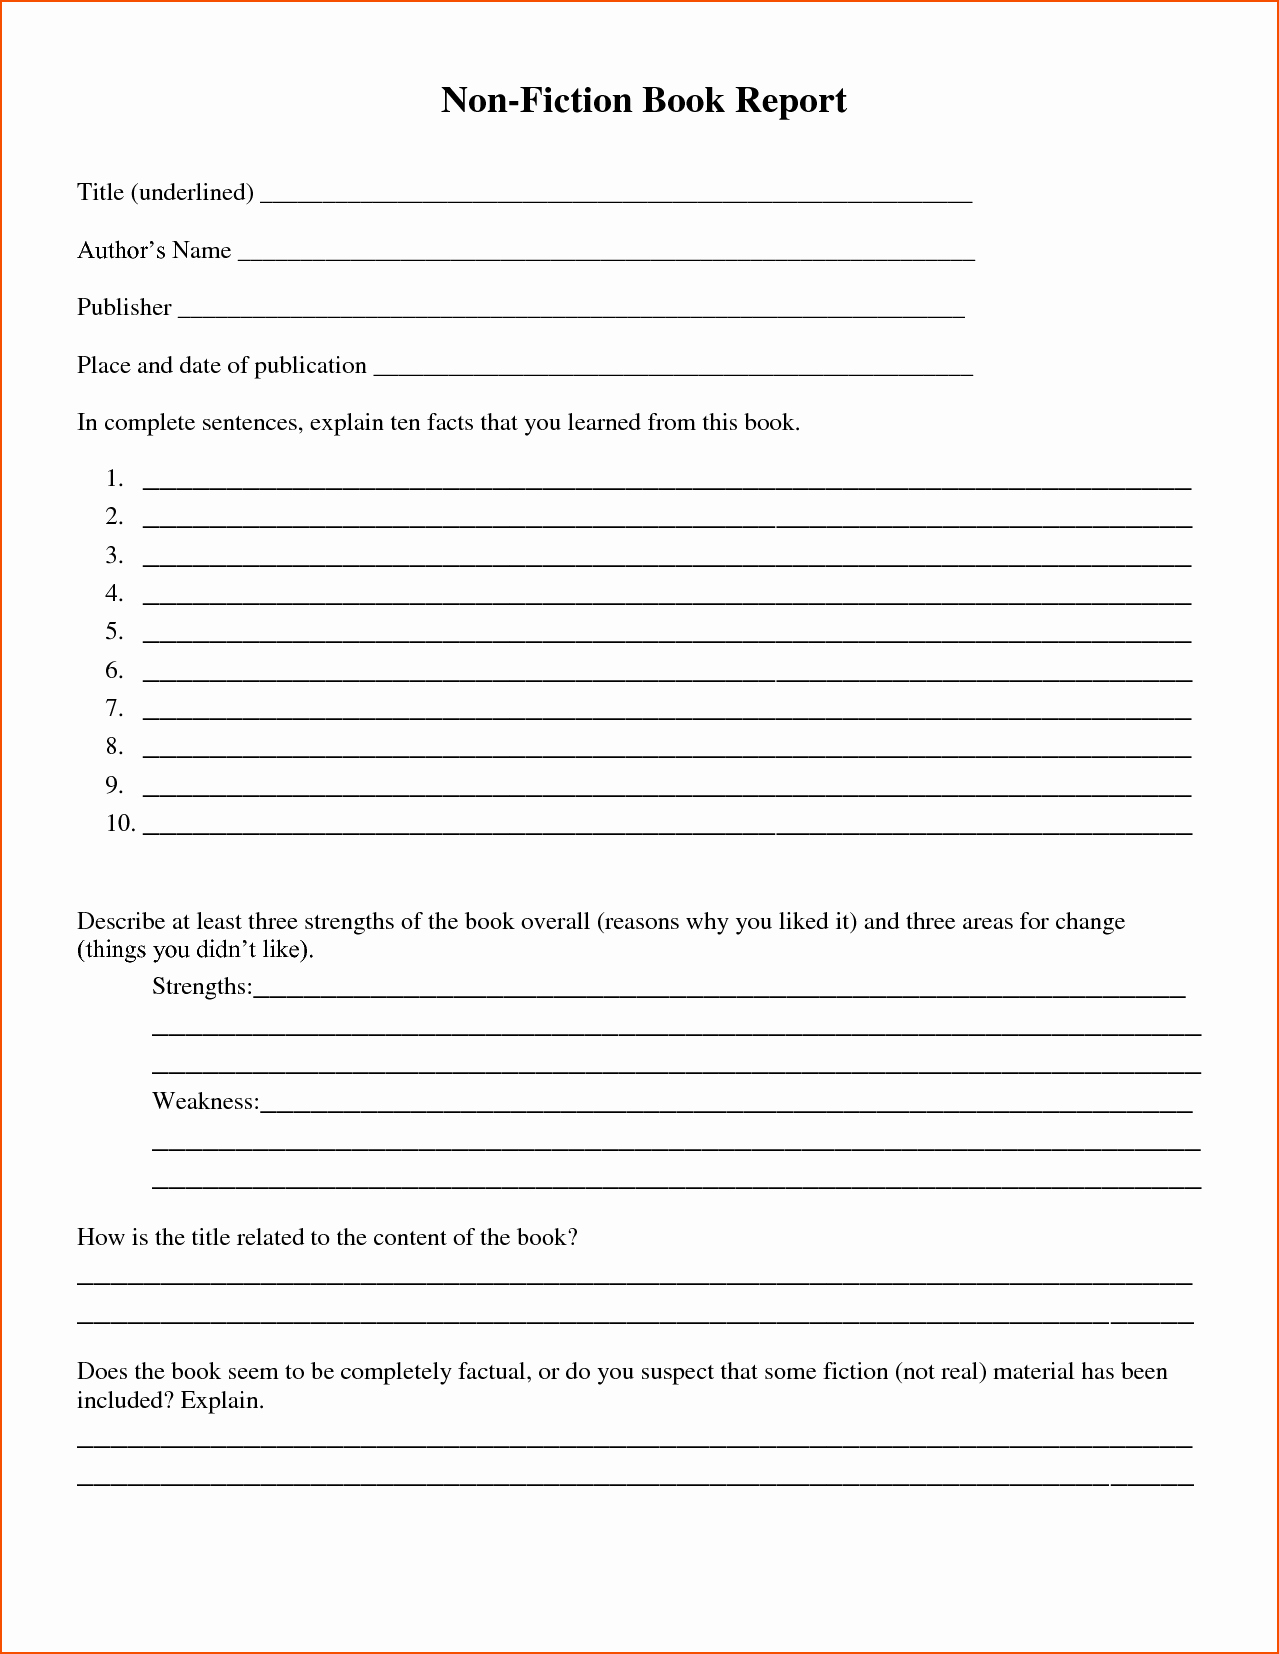 Nonfiction Book Report Template Luxury 7 Book Report Templates Bookletemplate